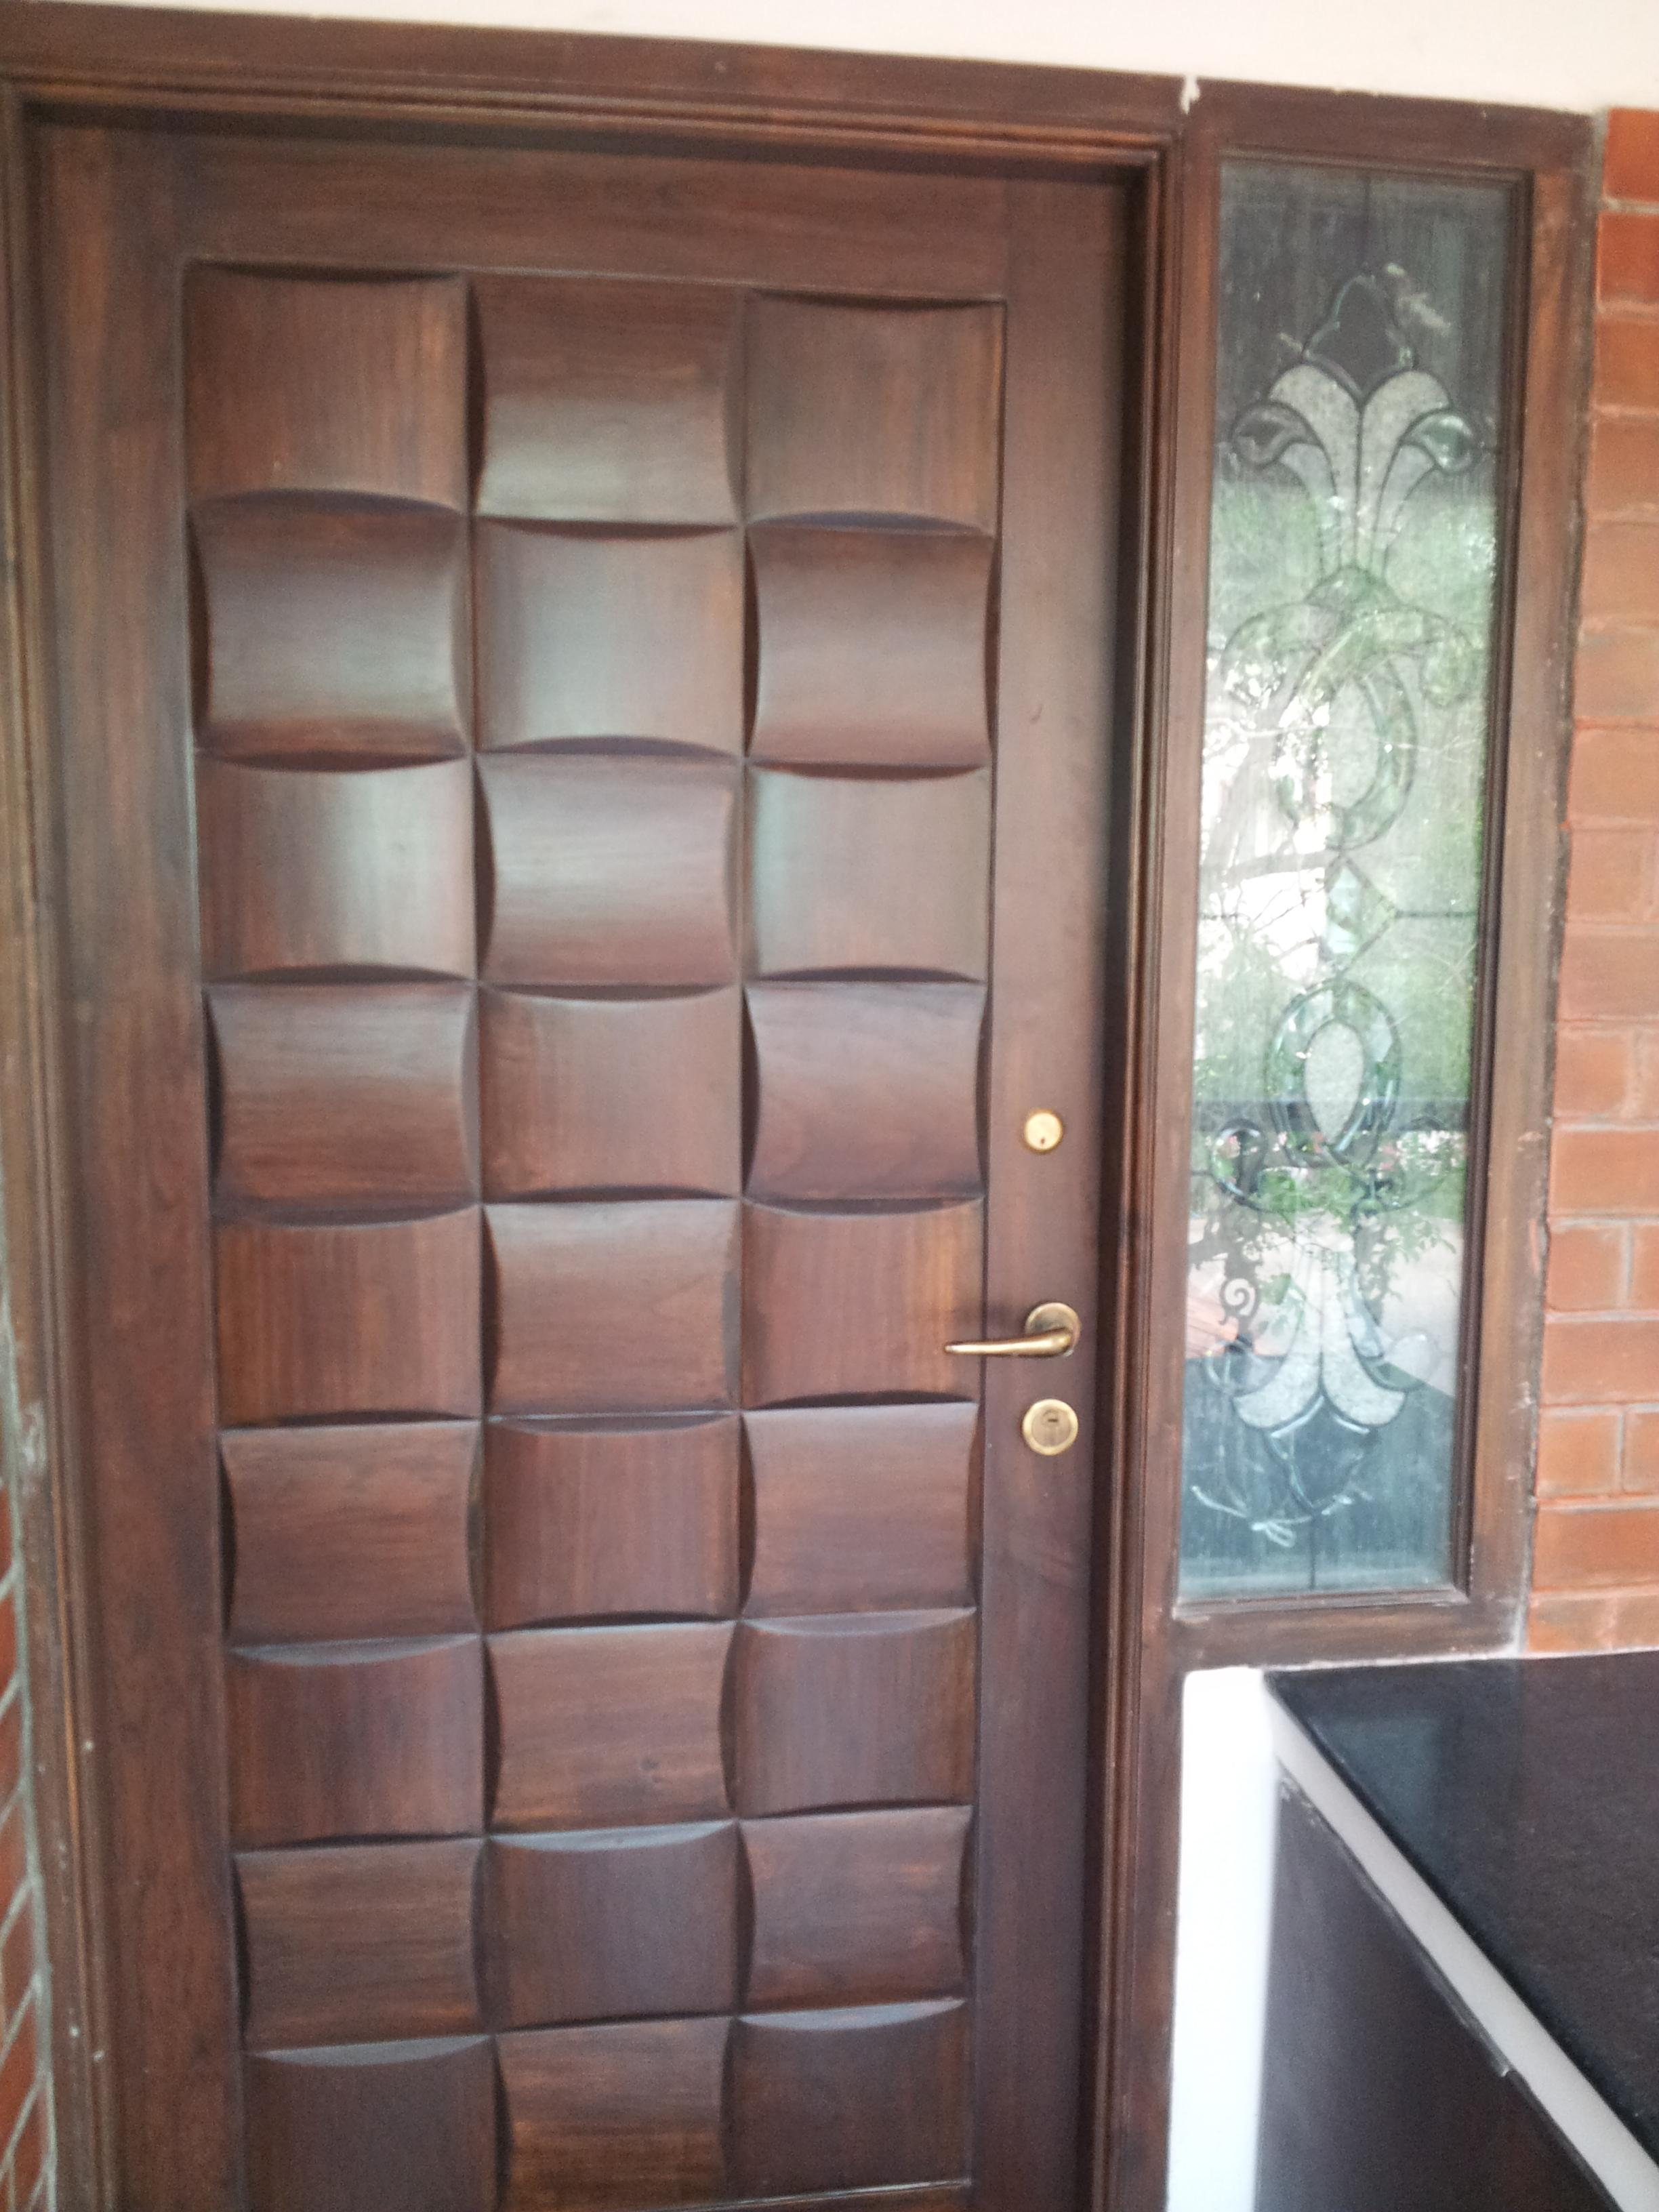 Main door design in wood very popular in 2013 gharexpert for Designs for main door of flat